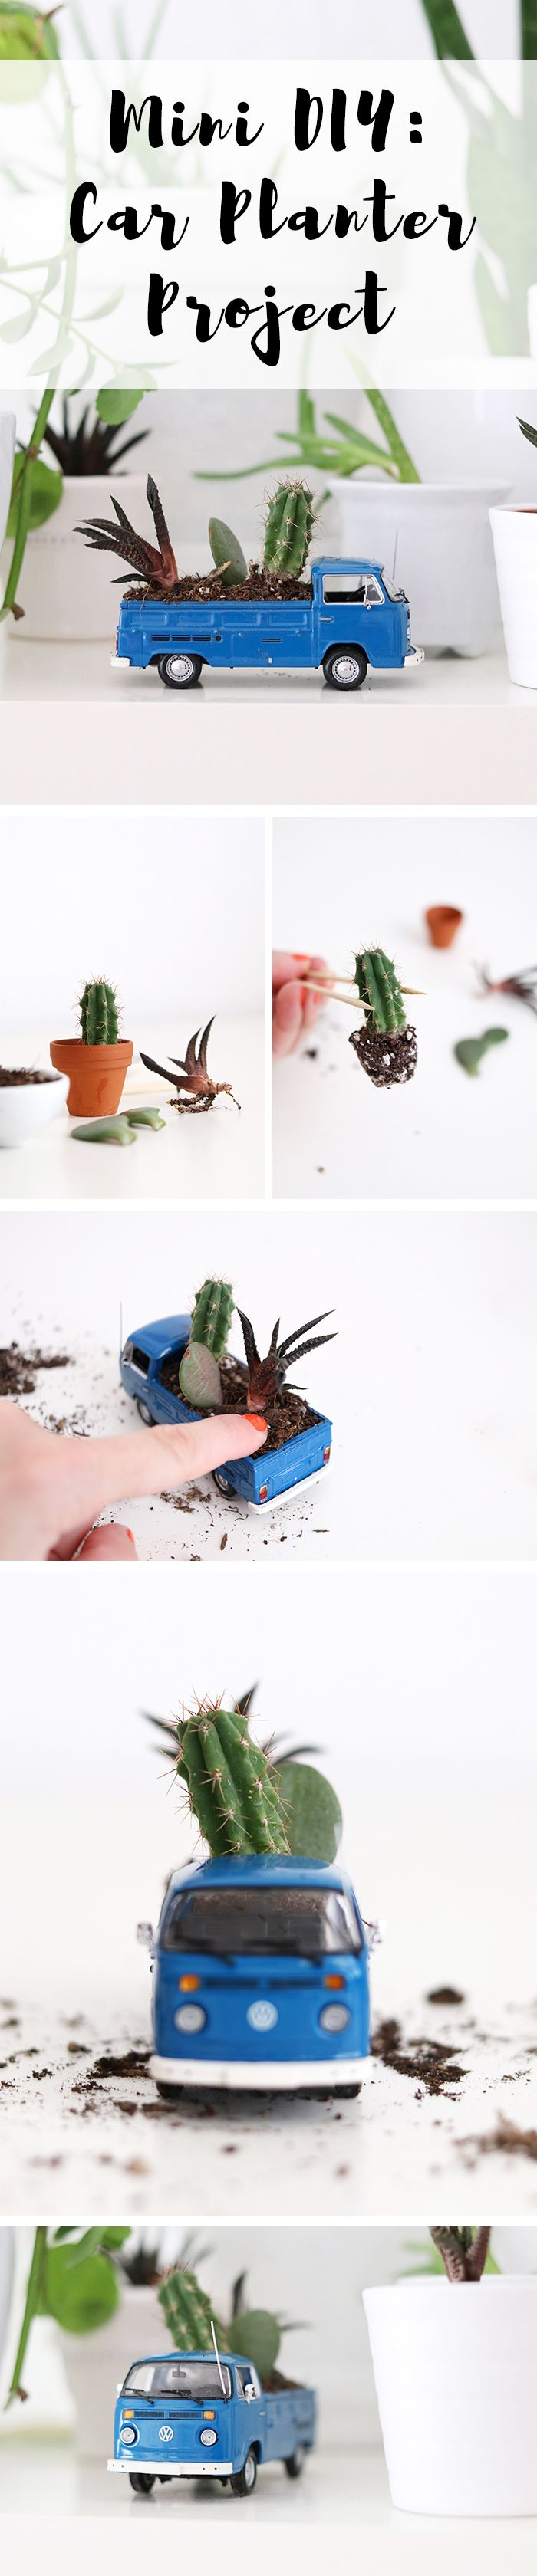 "Come and join us for an easy and super fun creative project and get inspiration for how to make a mini car planter. Volkswagen, Luloveshandmade and many other bloggers share even more inspiration in the ""DIY Bloggers for Volkswagen""-board: https://de.pinterest.com/volkswagen/diy-bloggers-for-volkswagen/"